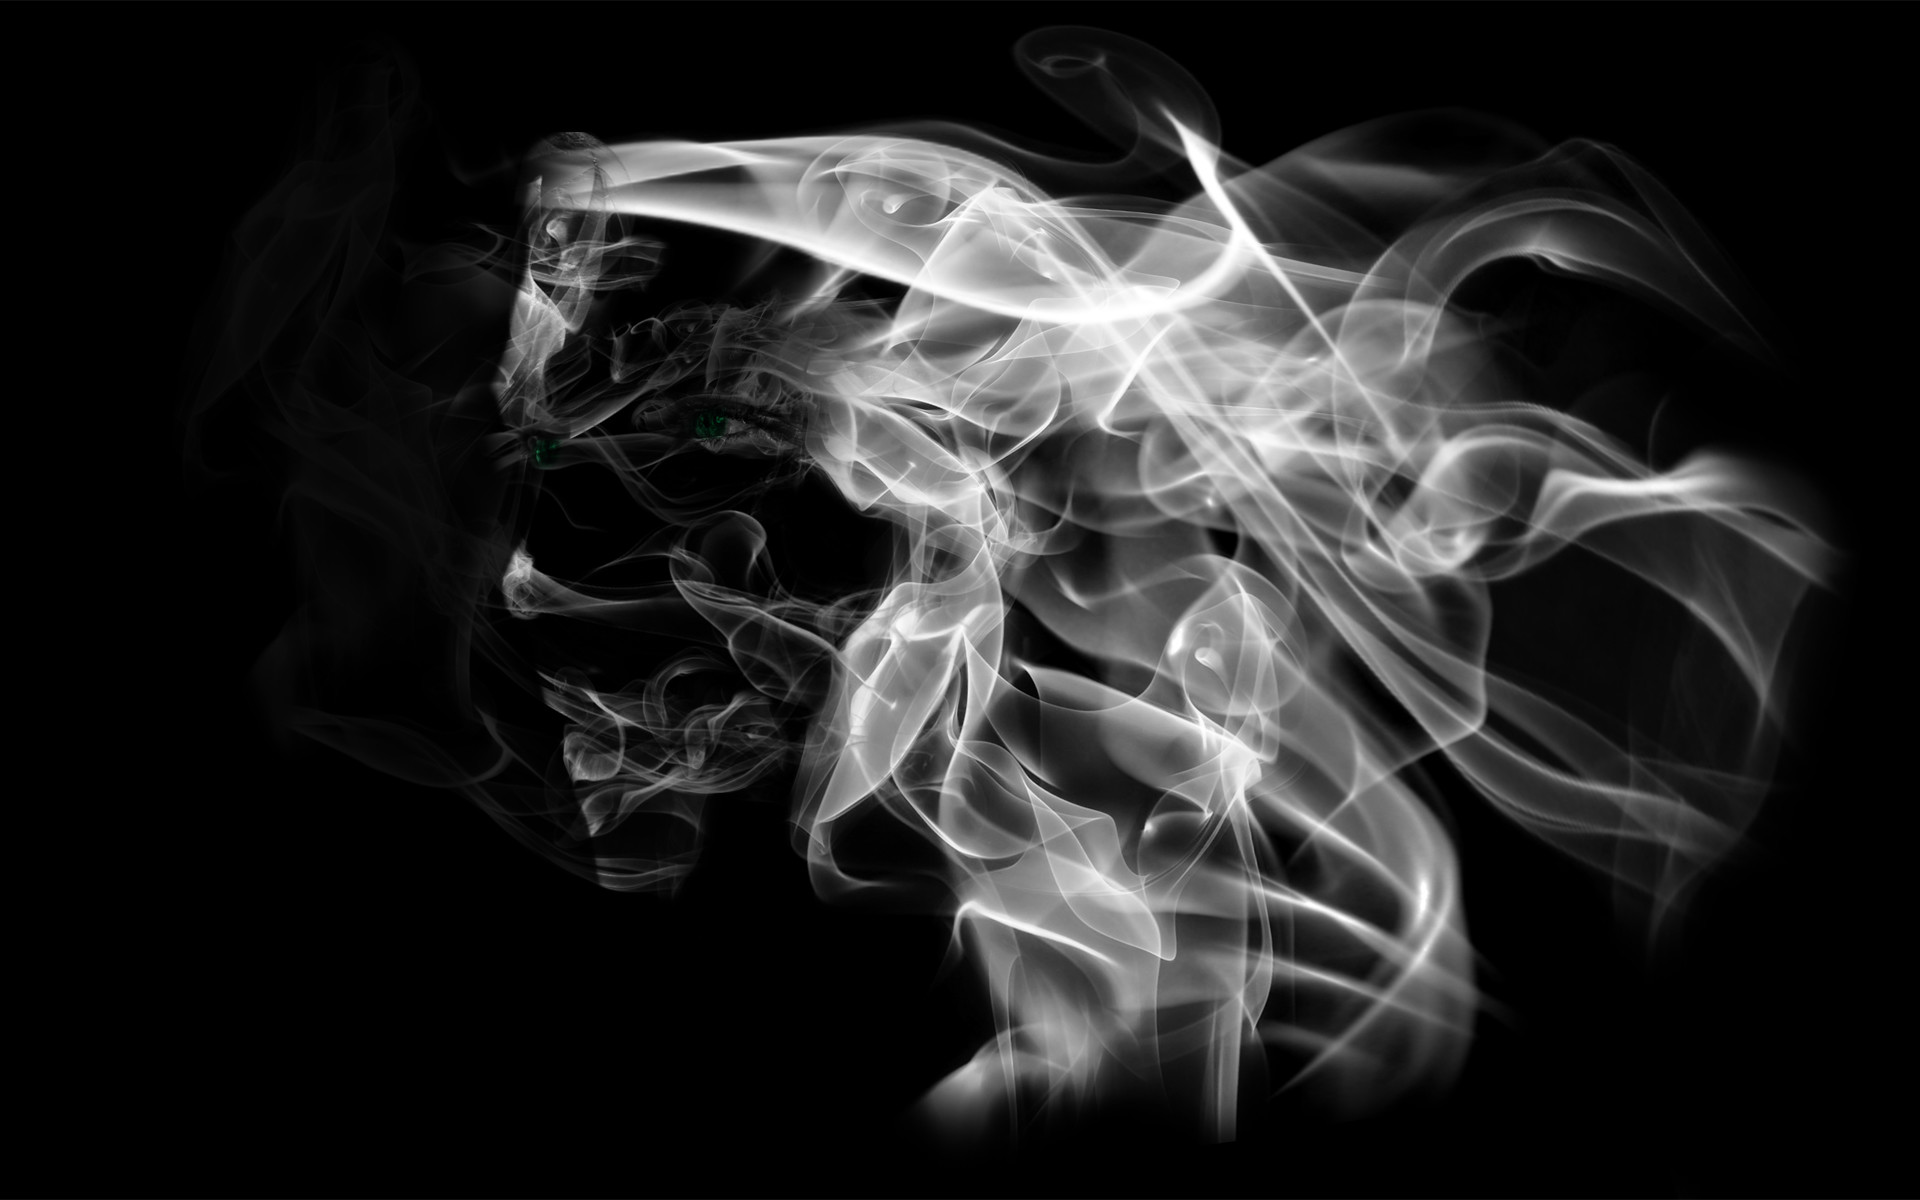 White Smoke Abstract Wallpaper HD #1032 Wallpaper | High Resolution .